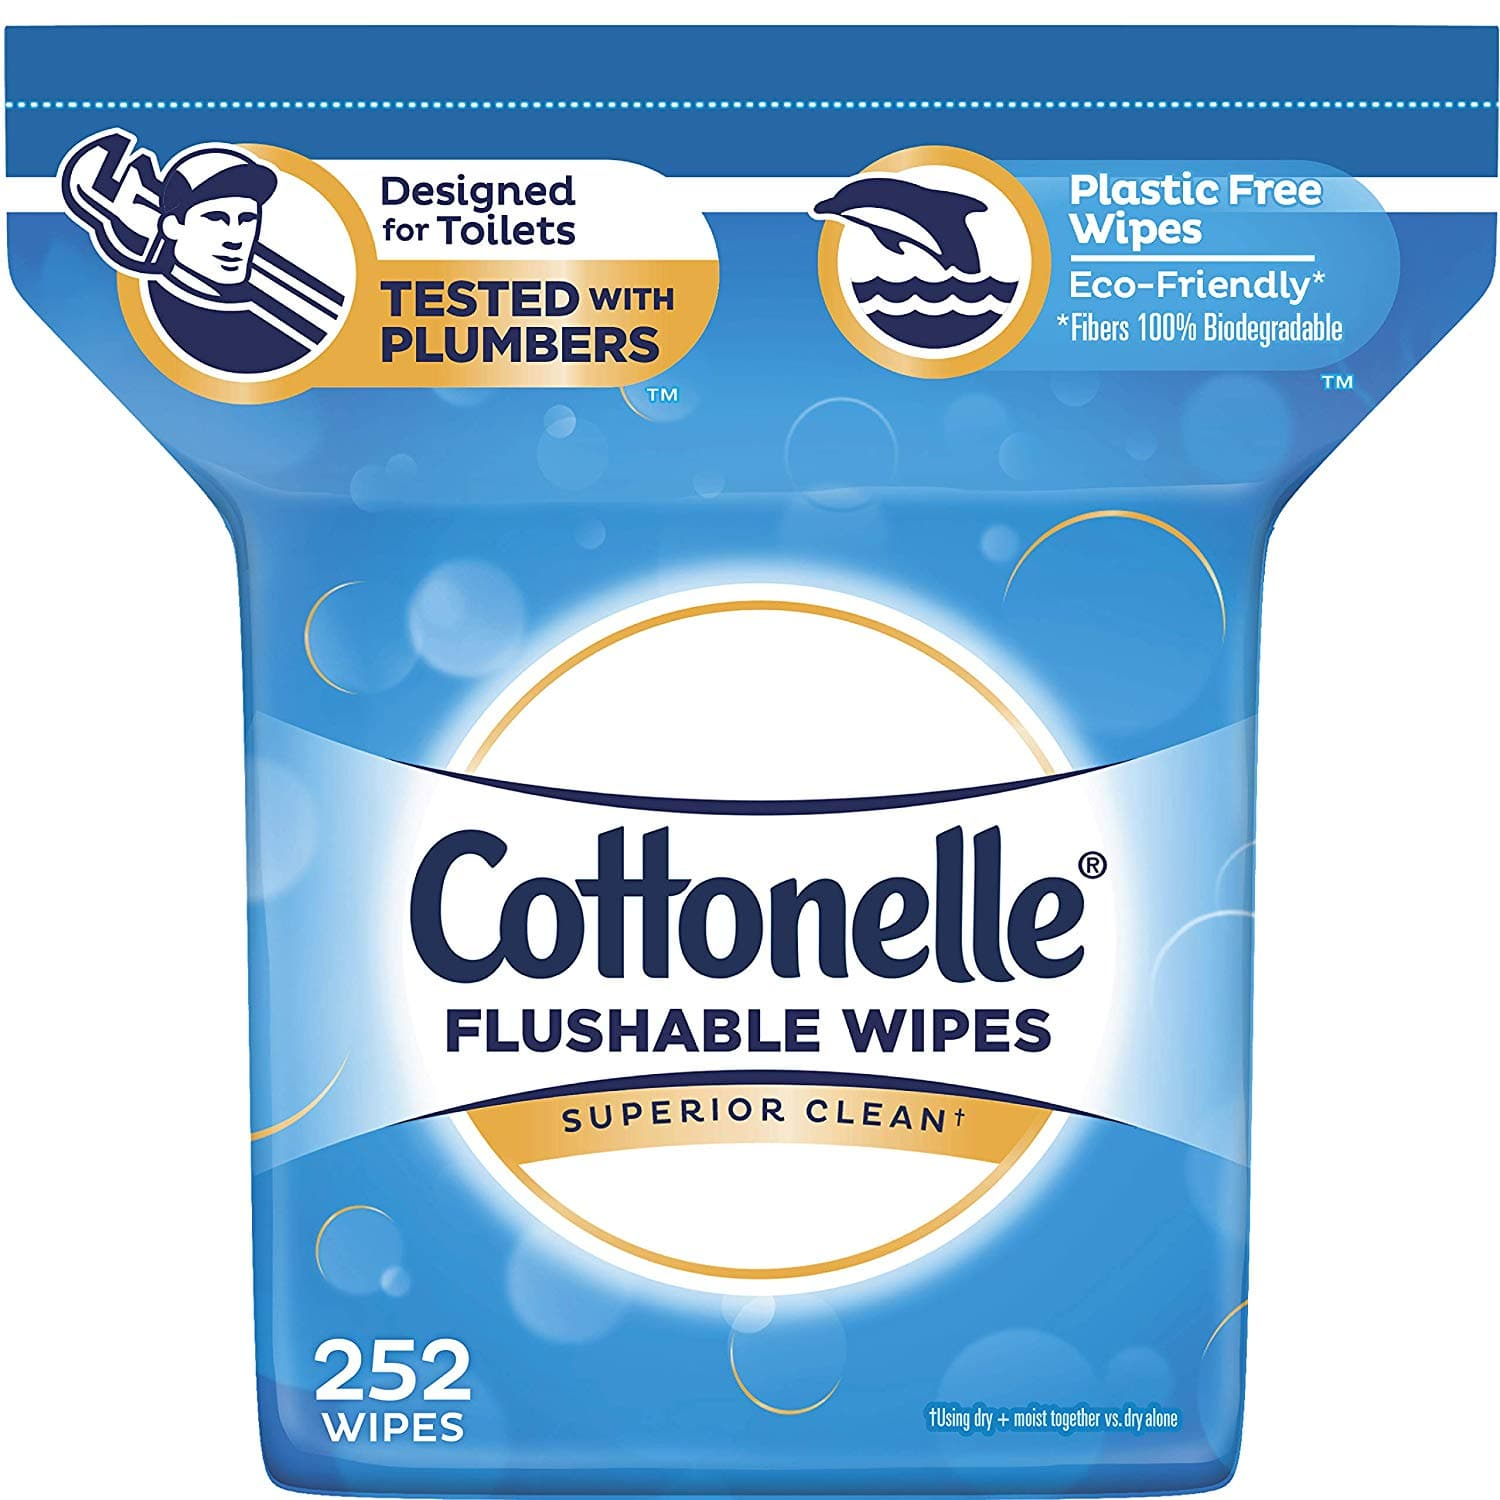 252 count Cottonelle FreshCare Flushable Wipes for Adults, Alcohol Free, $4.75 w/ S&S ($4.25 w/ 5+ items), Amazon